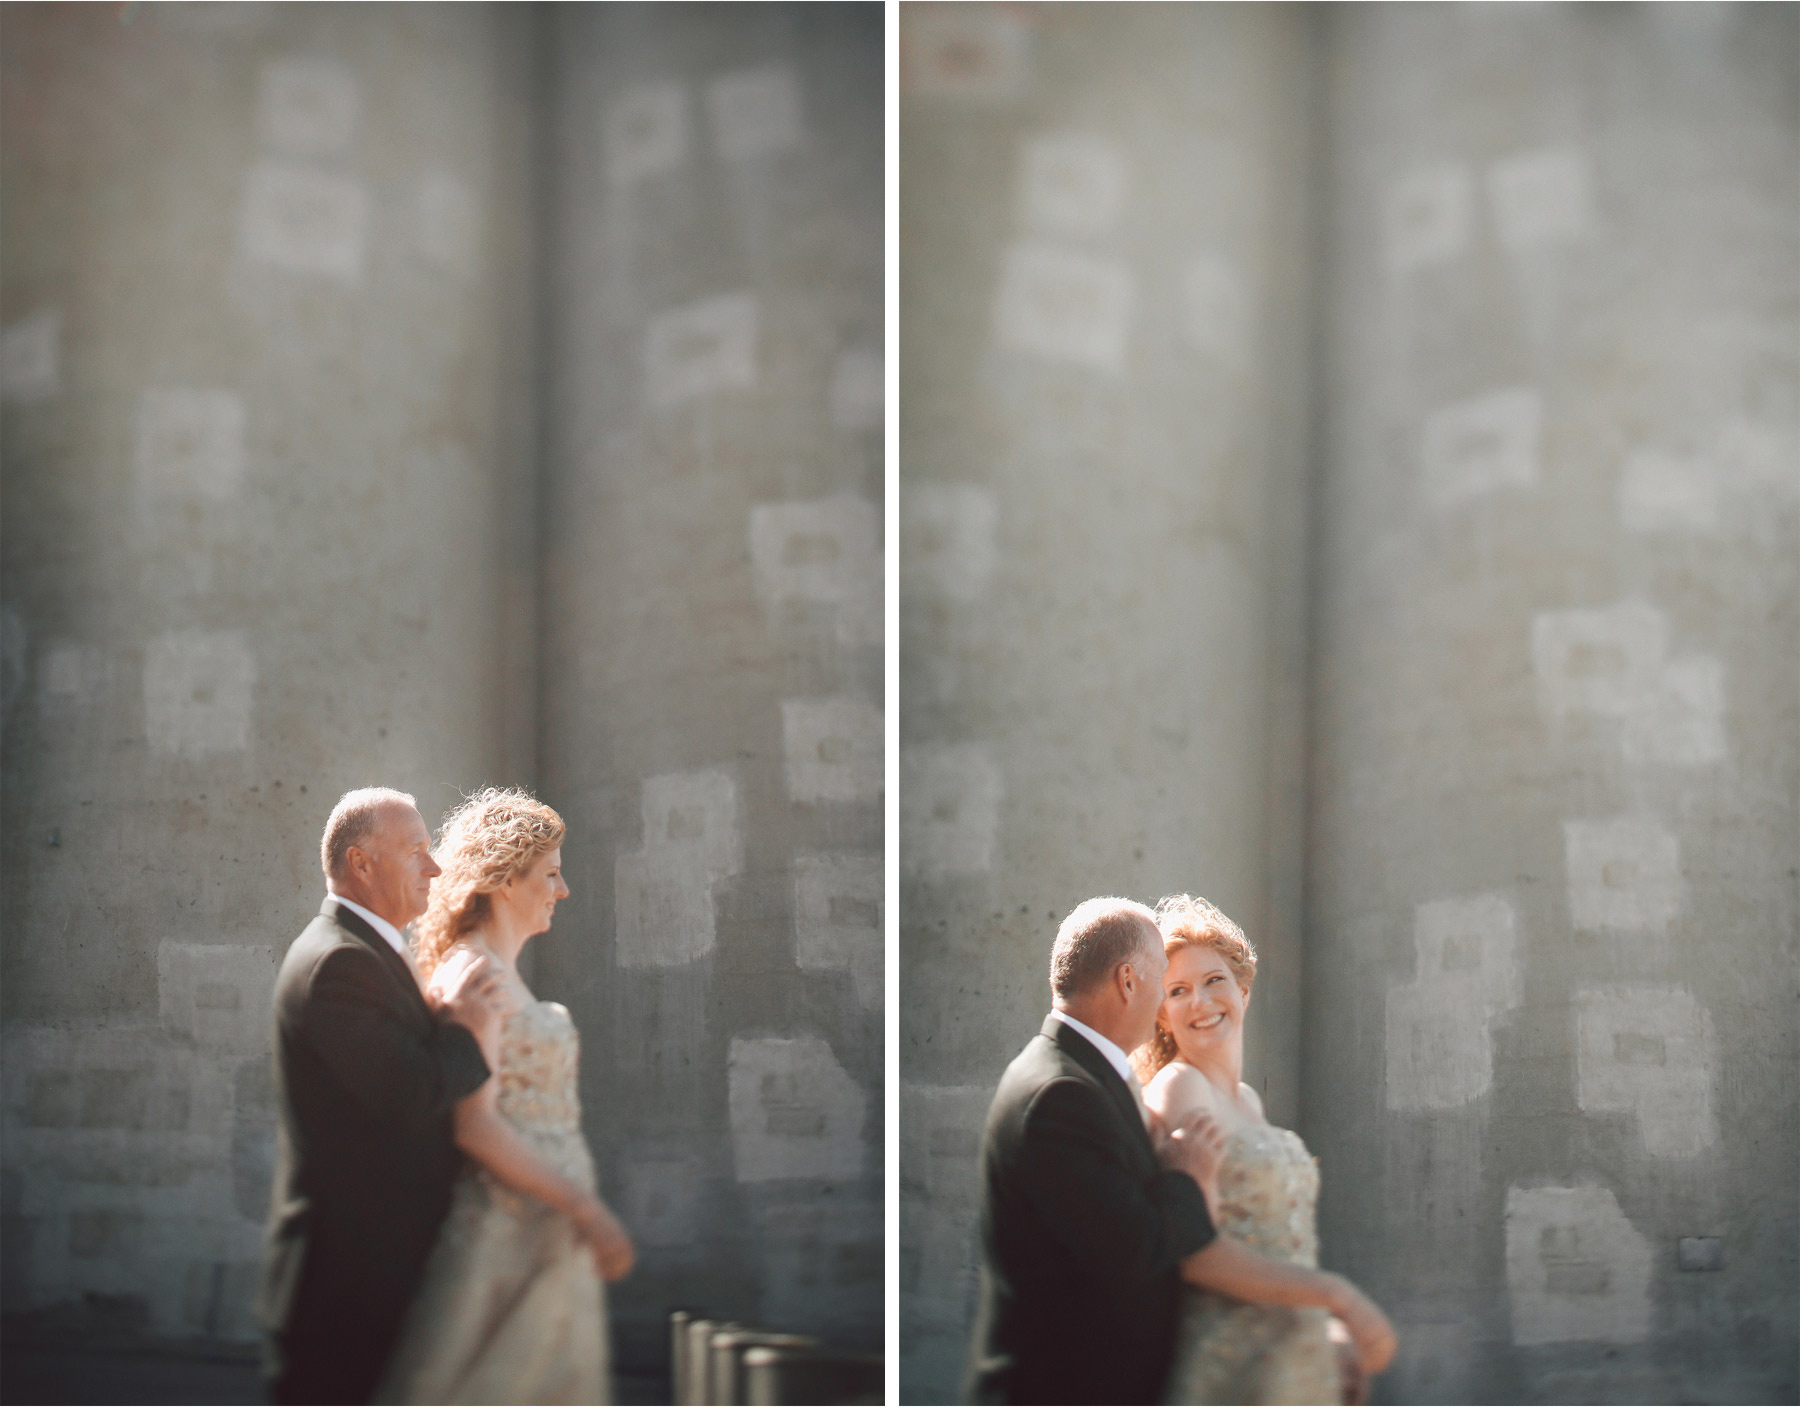 04-Minneapolis-Minnesota-Wedding-Photographer-by-Andrew-Vick-Photography-Spring-Downtown-Bride-Groom-Laughter-Embrace-Vintage-Dannette-and-Darren.jpg